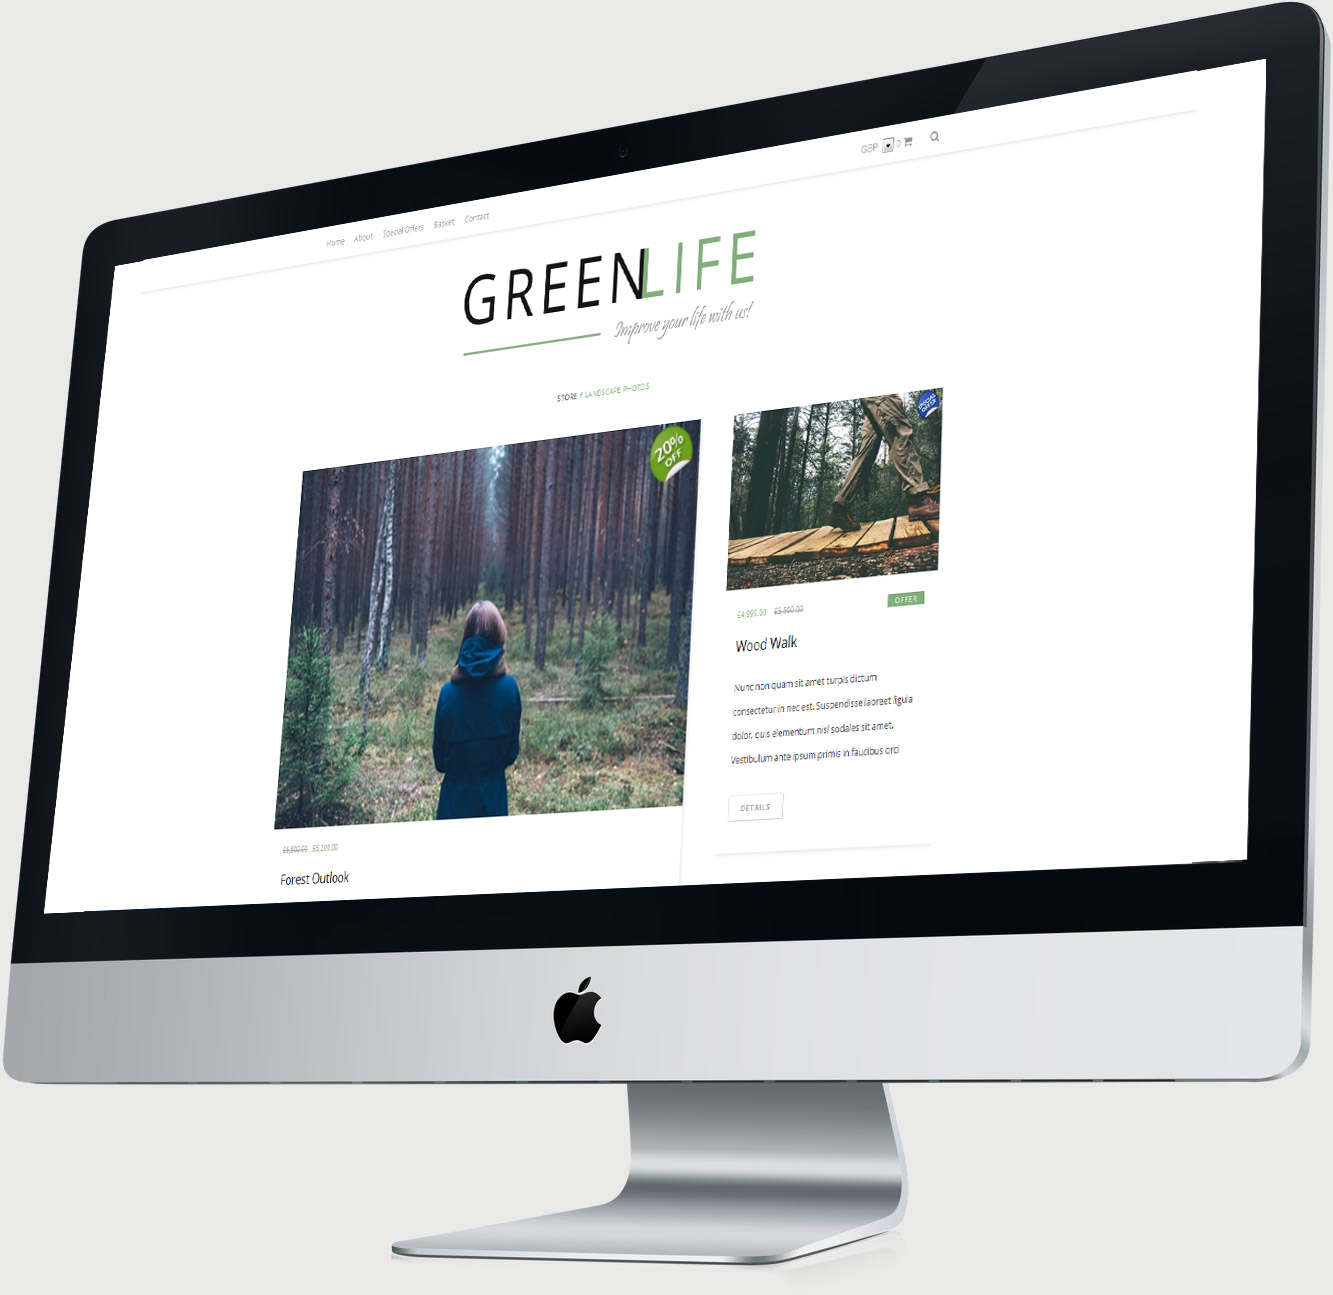 Green-Life Mac Display